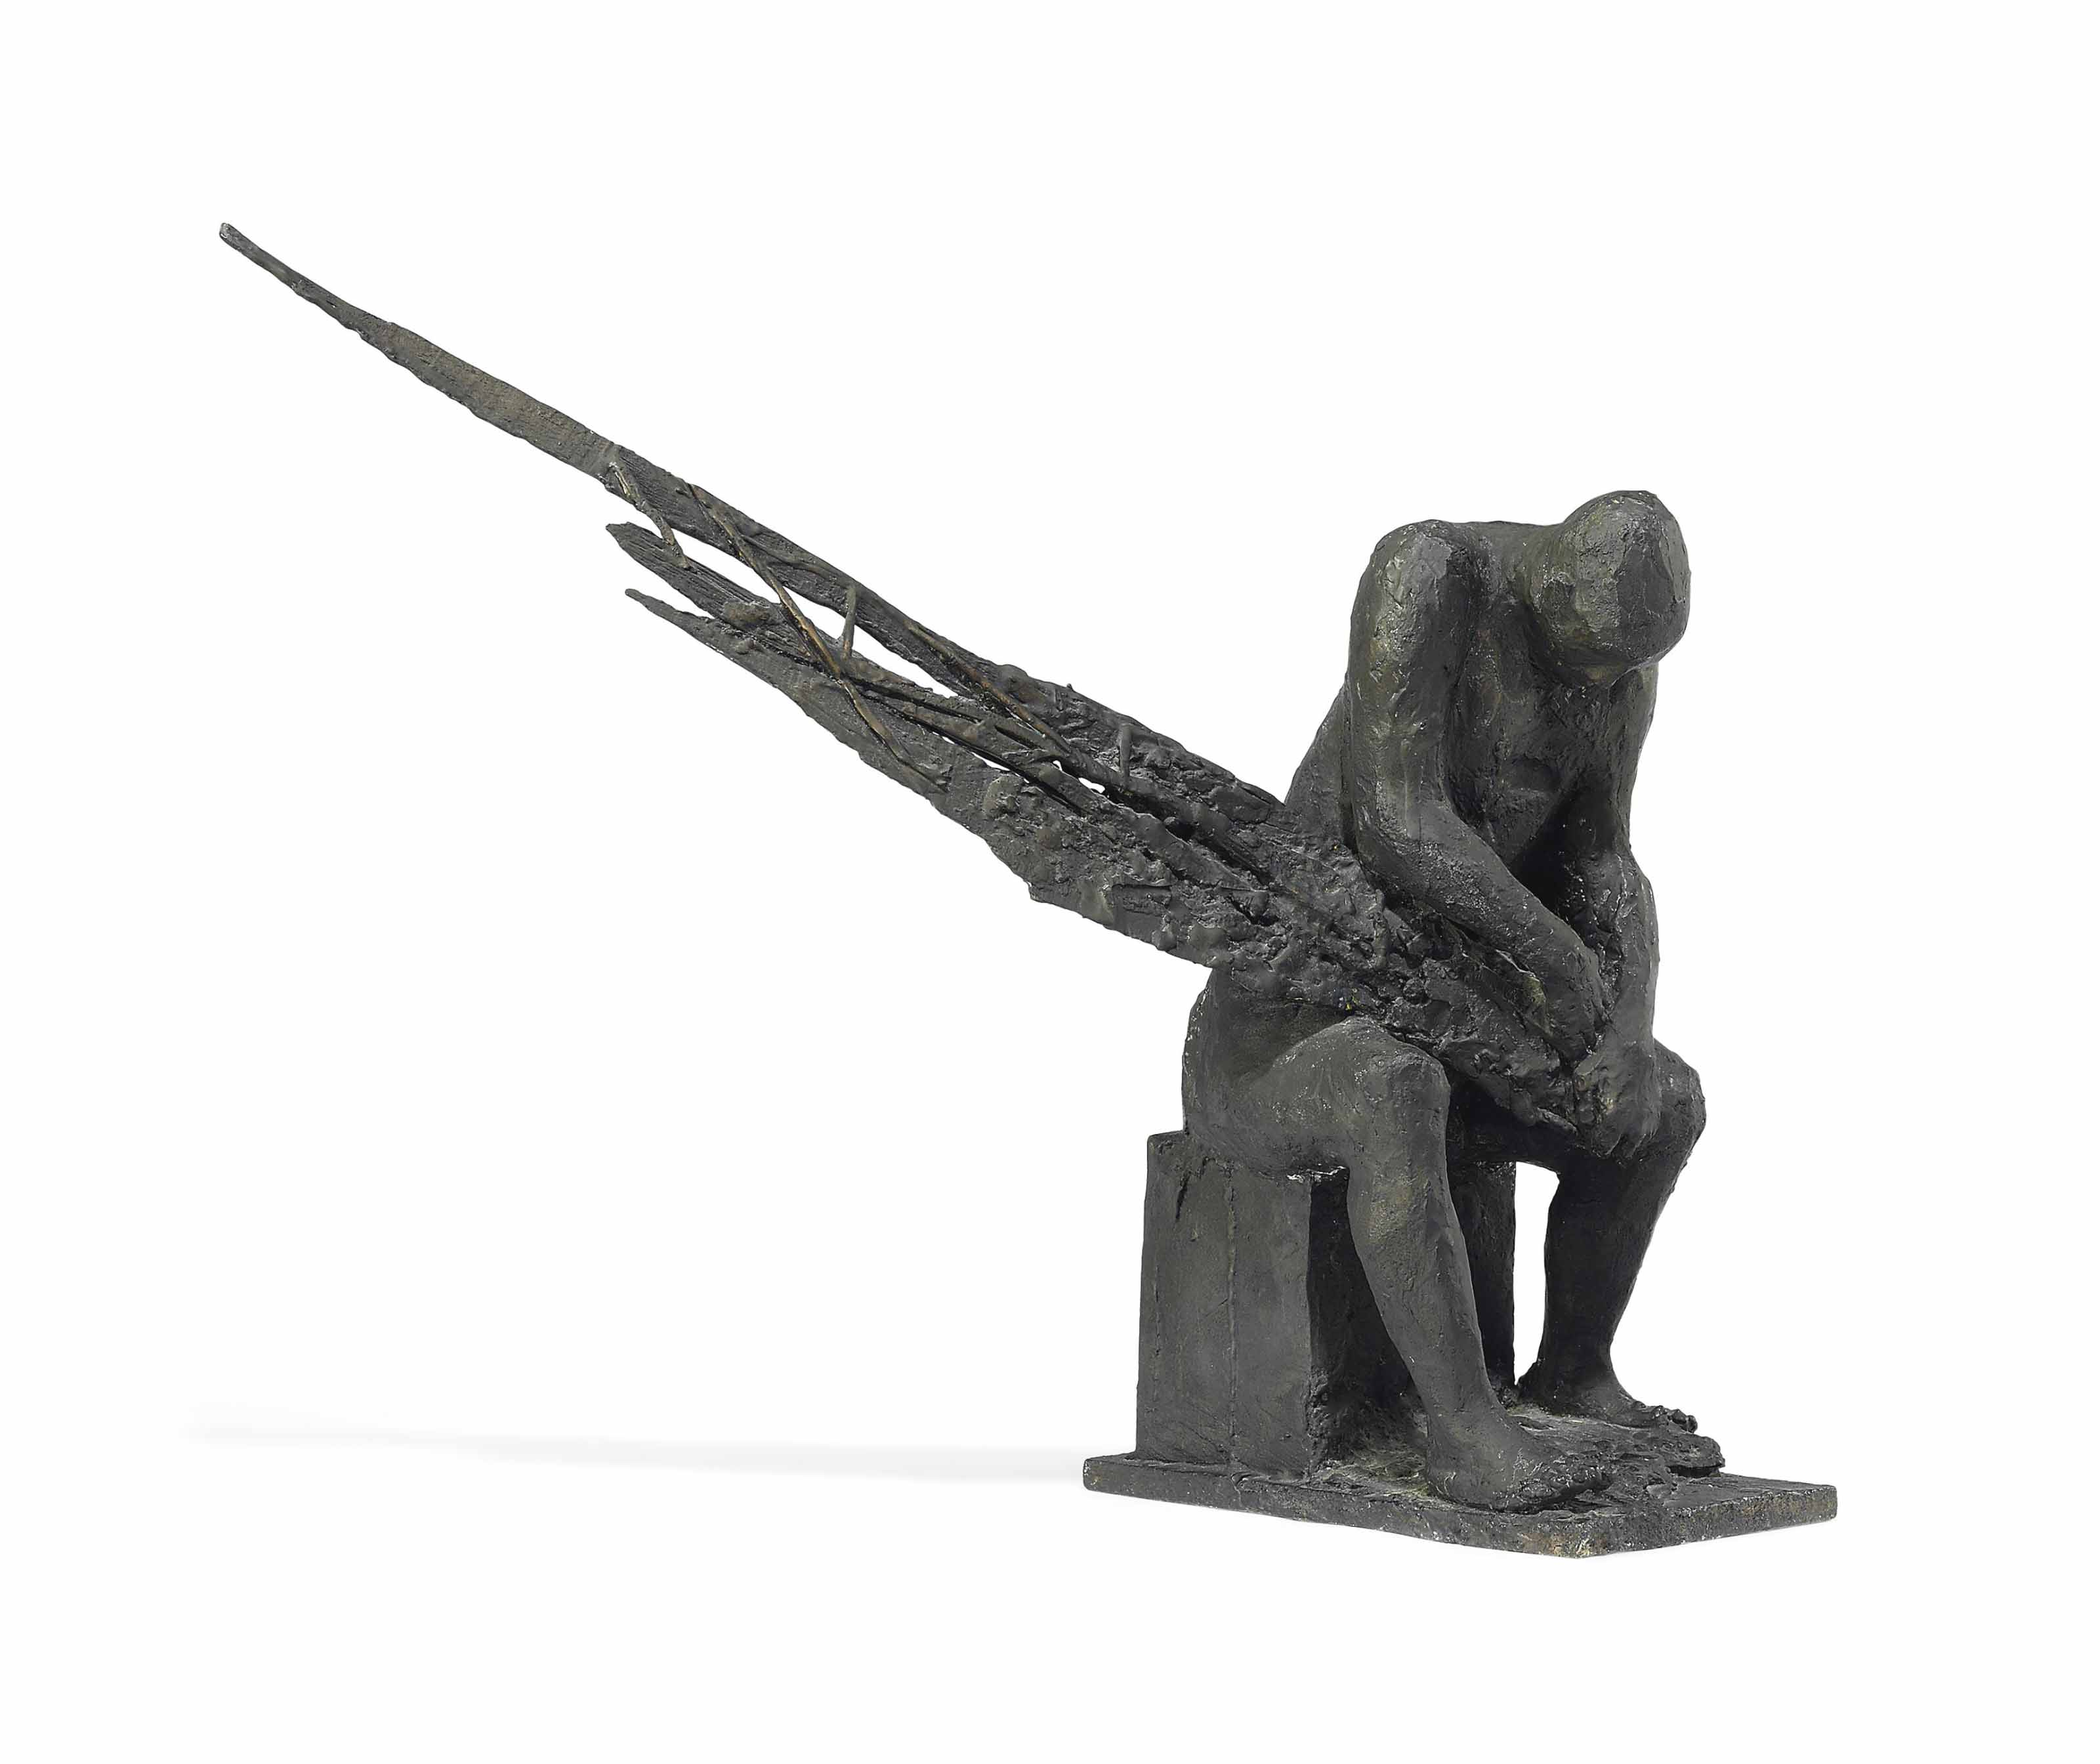 Daedalus, the wing maker